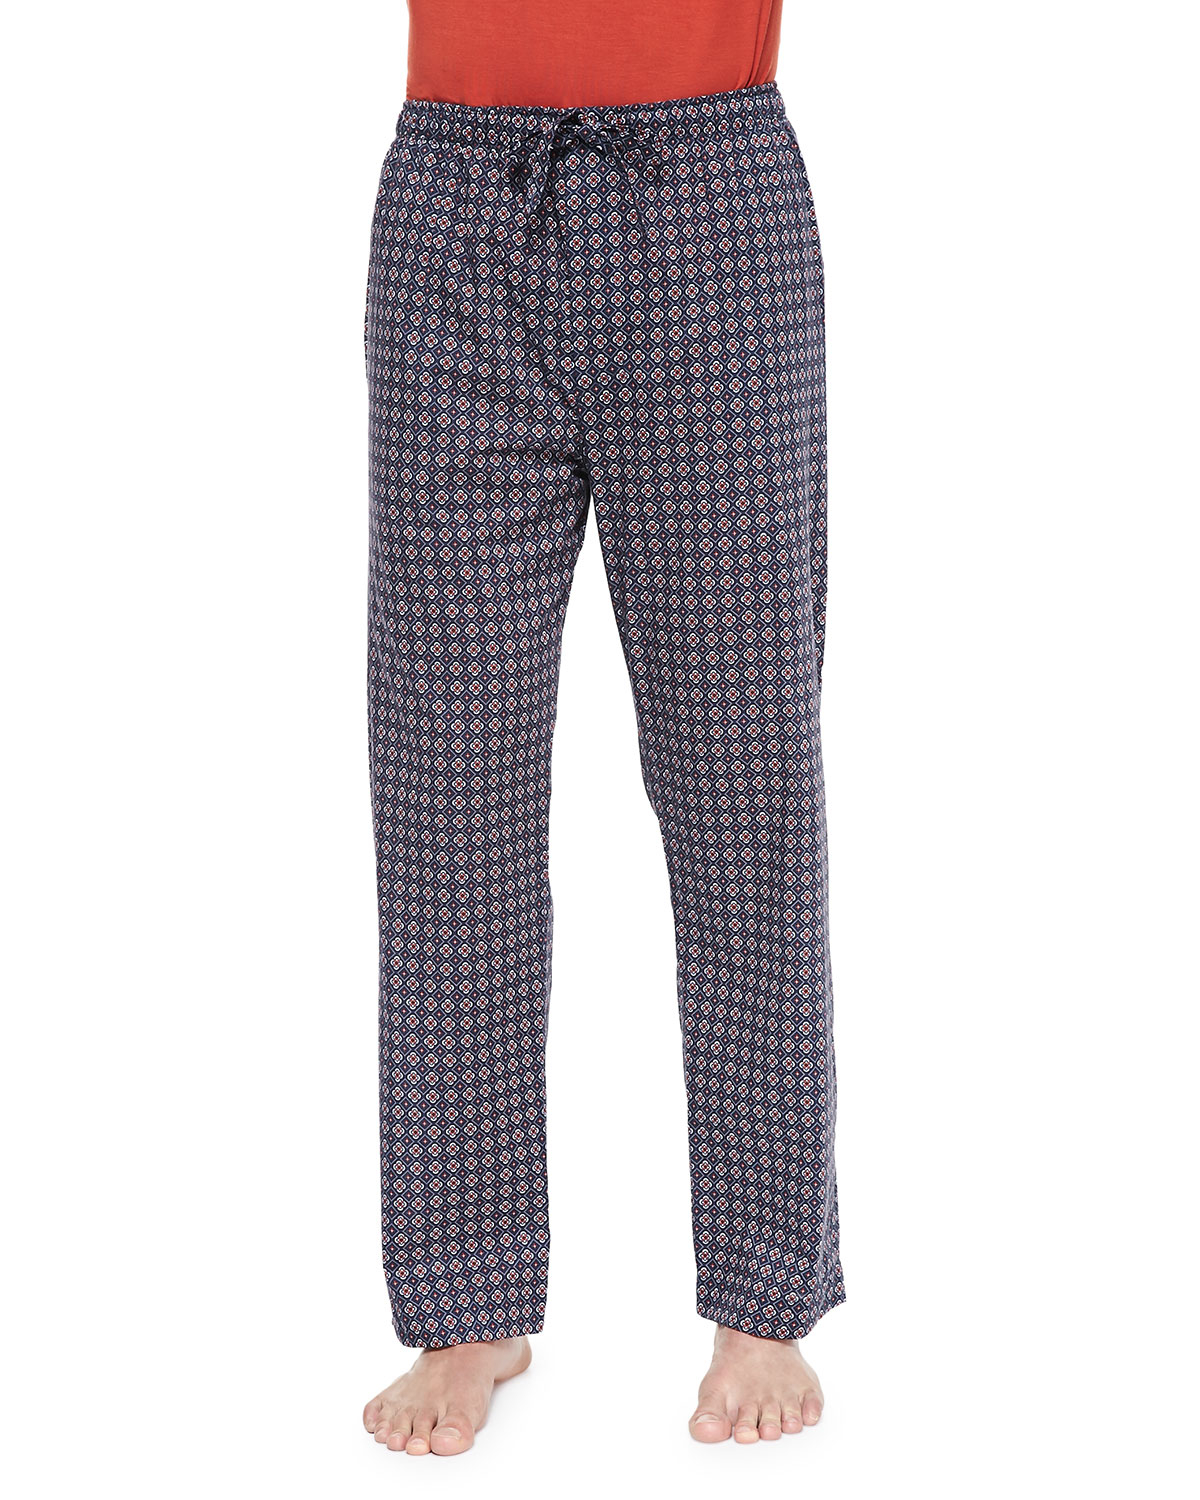 Lyst Derek Rose Star Print Batiste Lounge Pants In Blue